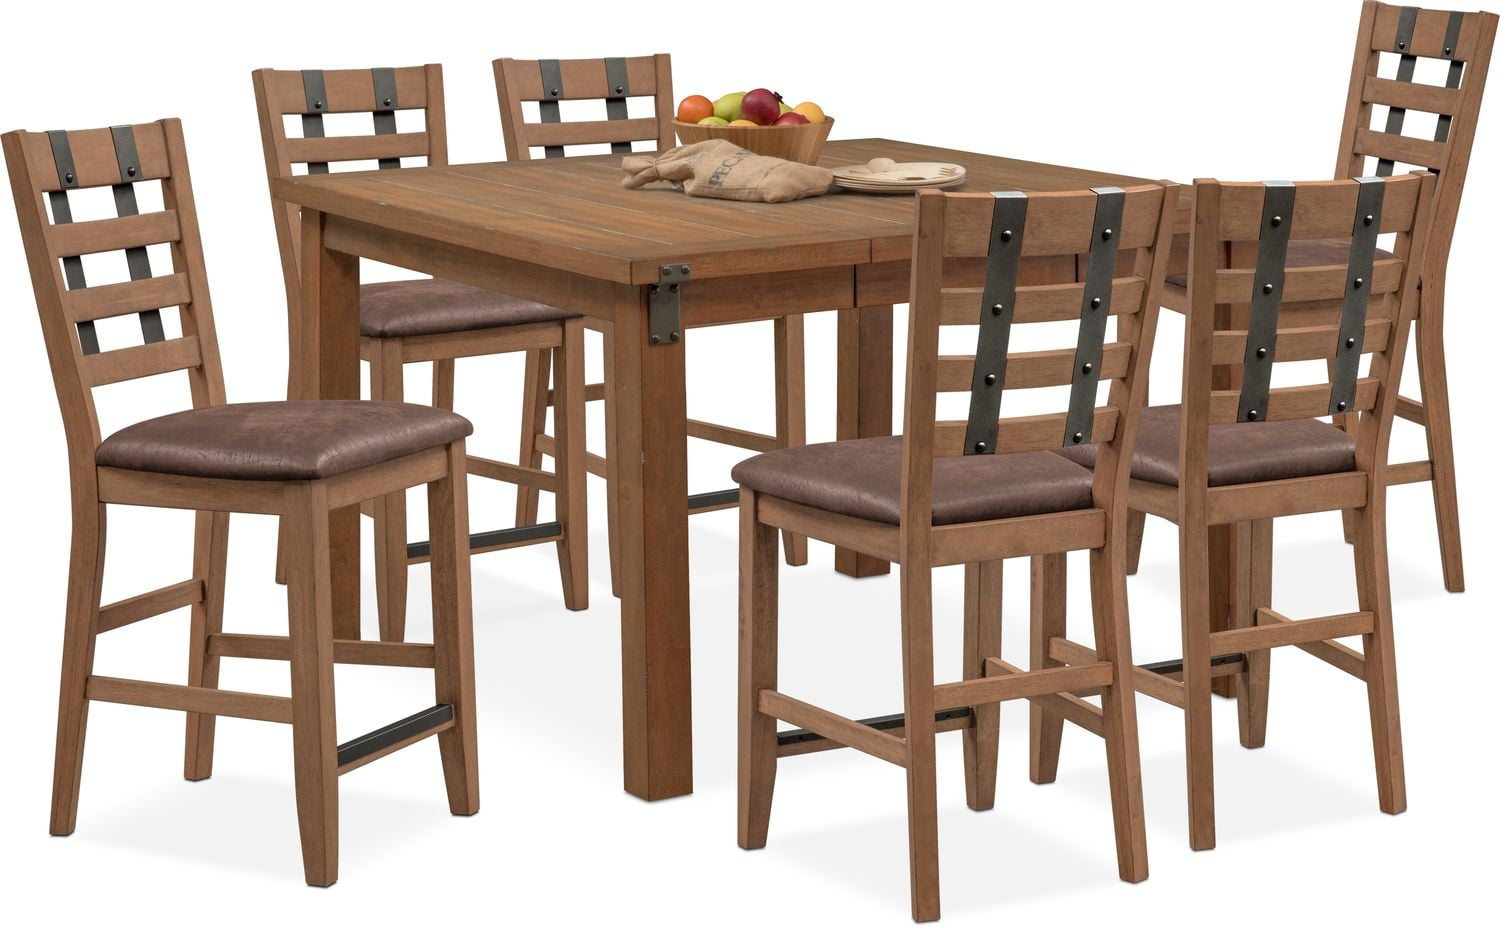 Dining Room Furniture   Hampton Counter Height Dining Table And 6 Stools    Sandstone